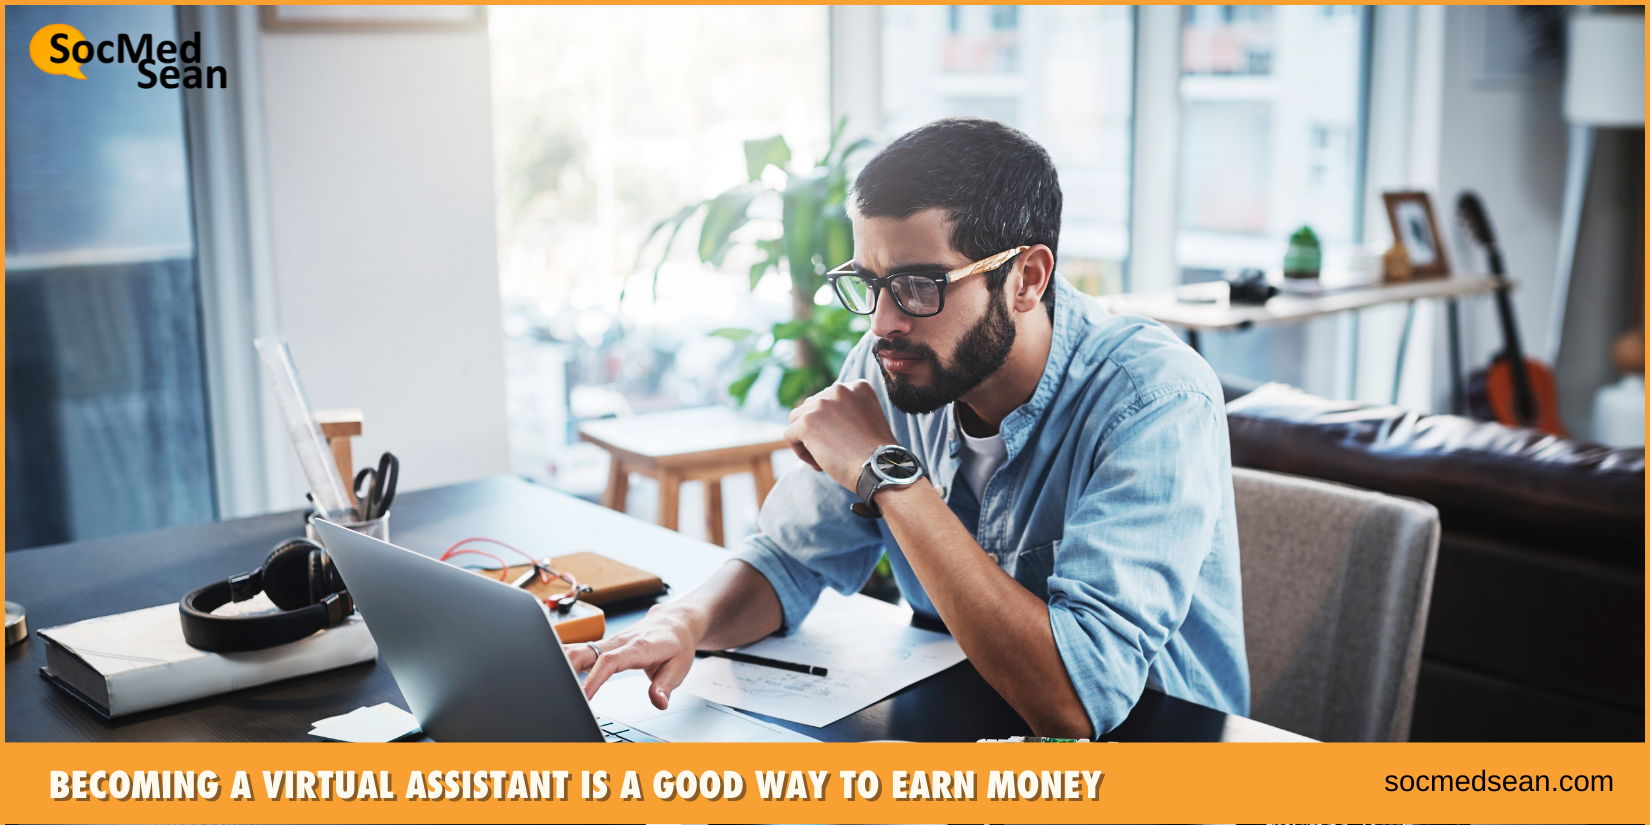 Becoming a virtual assistant is a good way to earn money